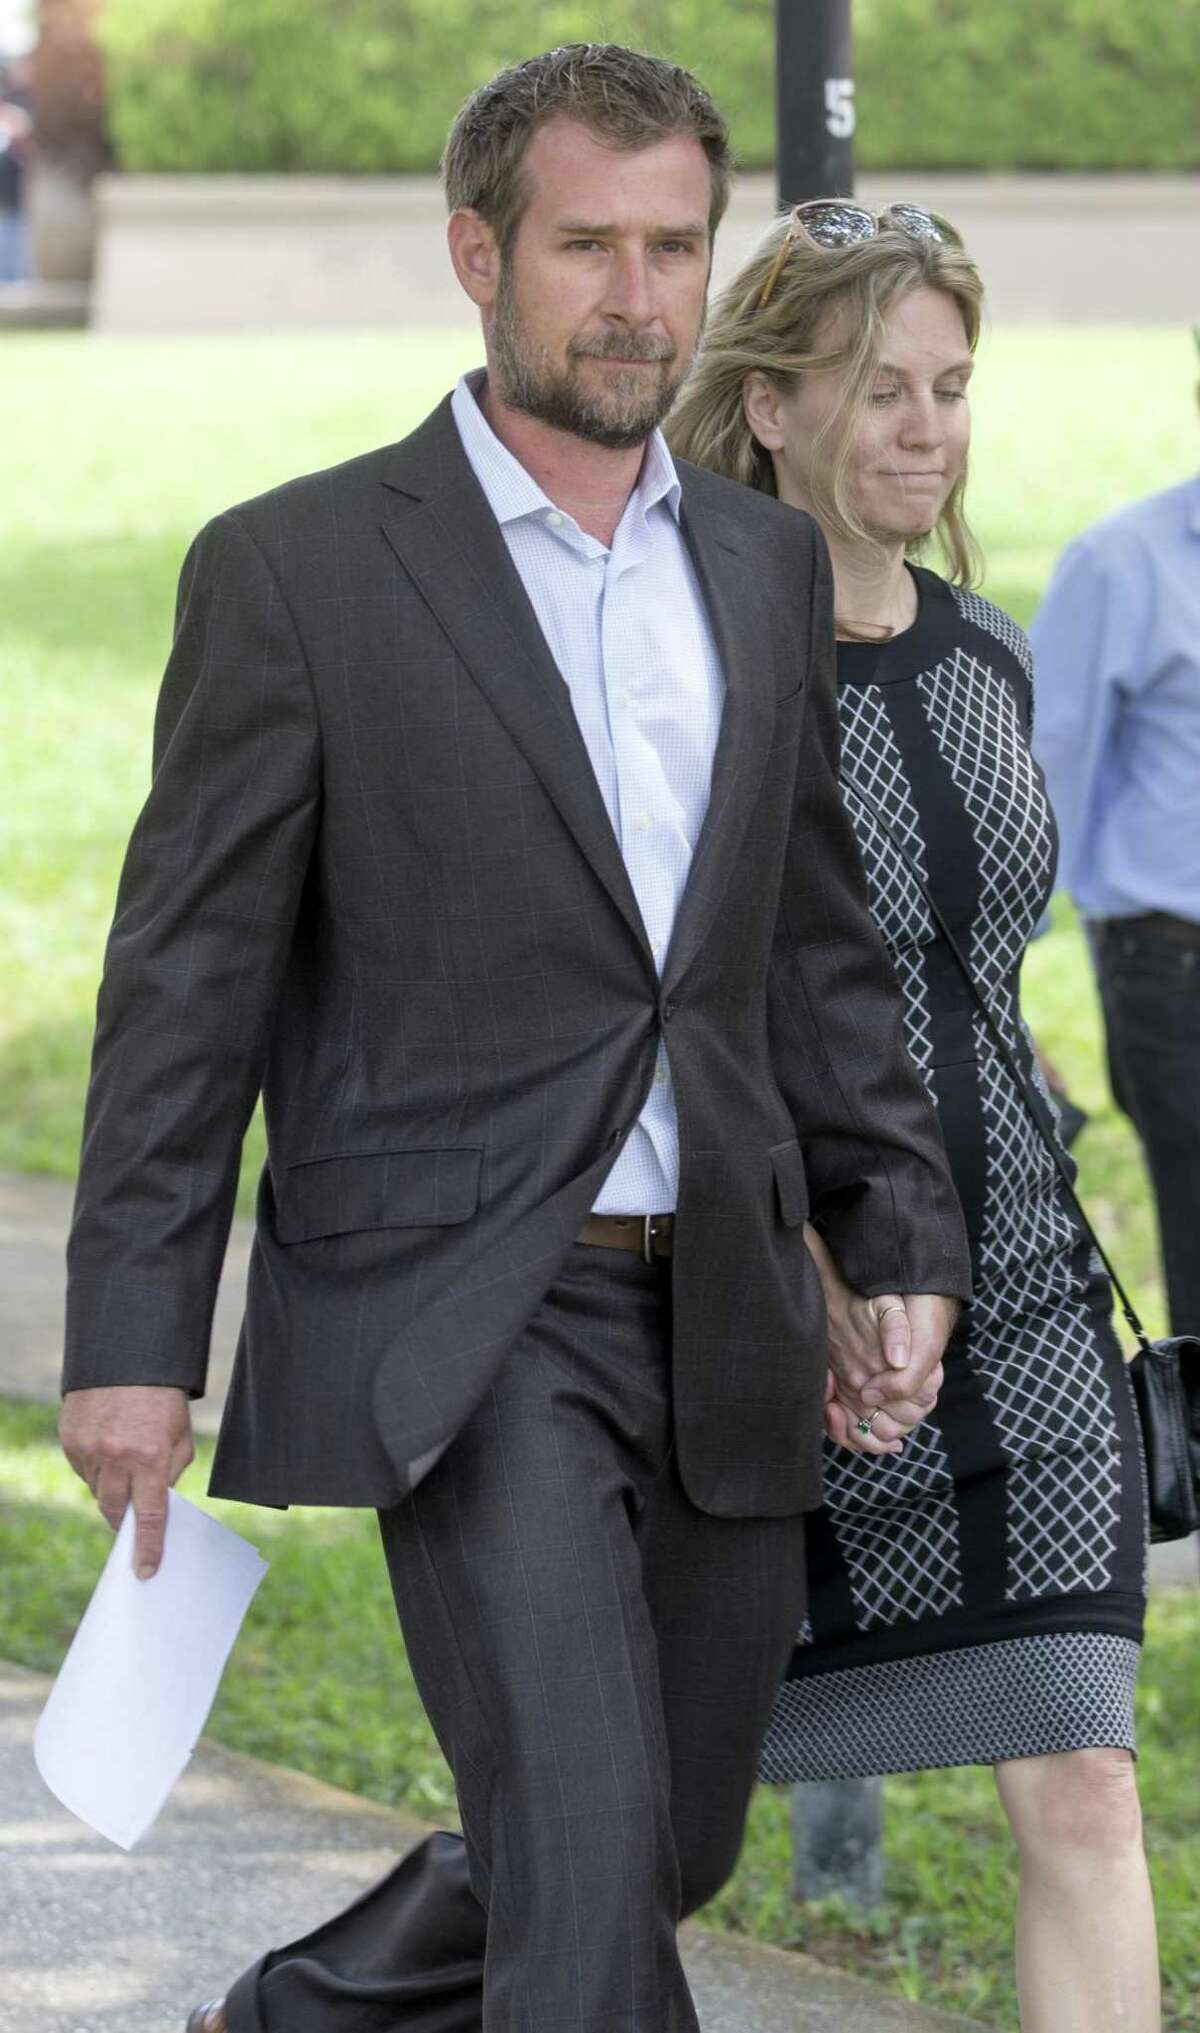 Lawyers for Lubbock businessman Vernon C. Farthing, state Sen. Carlos Uresti's co-defendant, requested a more than five month delay in the trial. The two men will now stand trial beginning Oct. 22. Farthing is seen with his wife, Aurora, leaving the San Antonio federal courthouse in May.